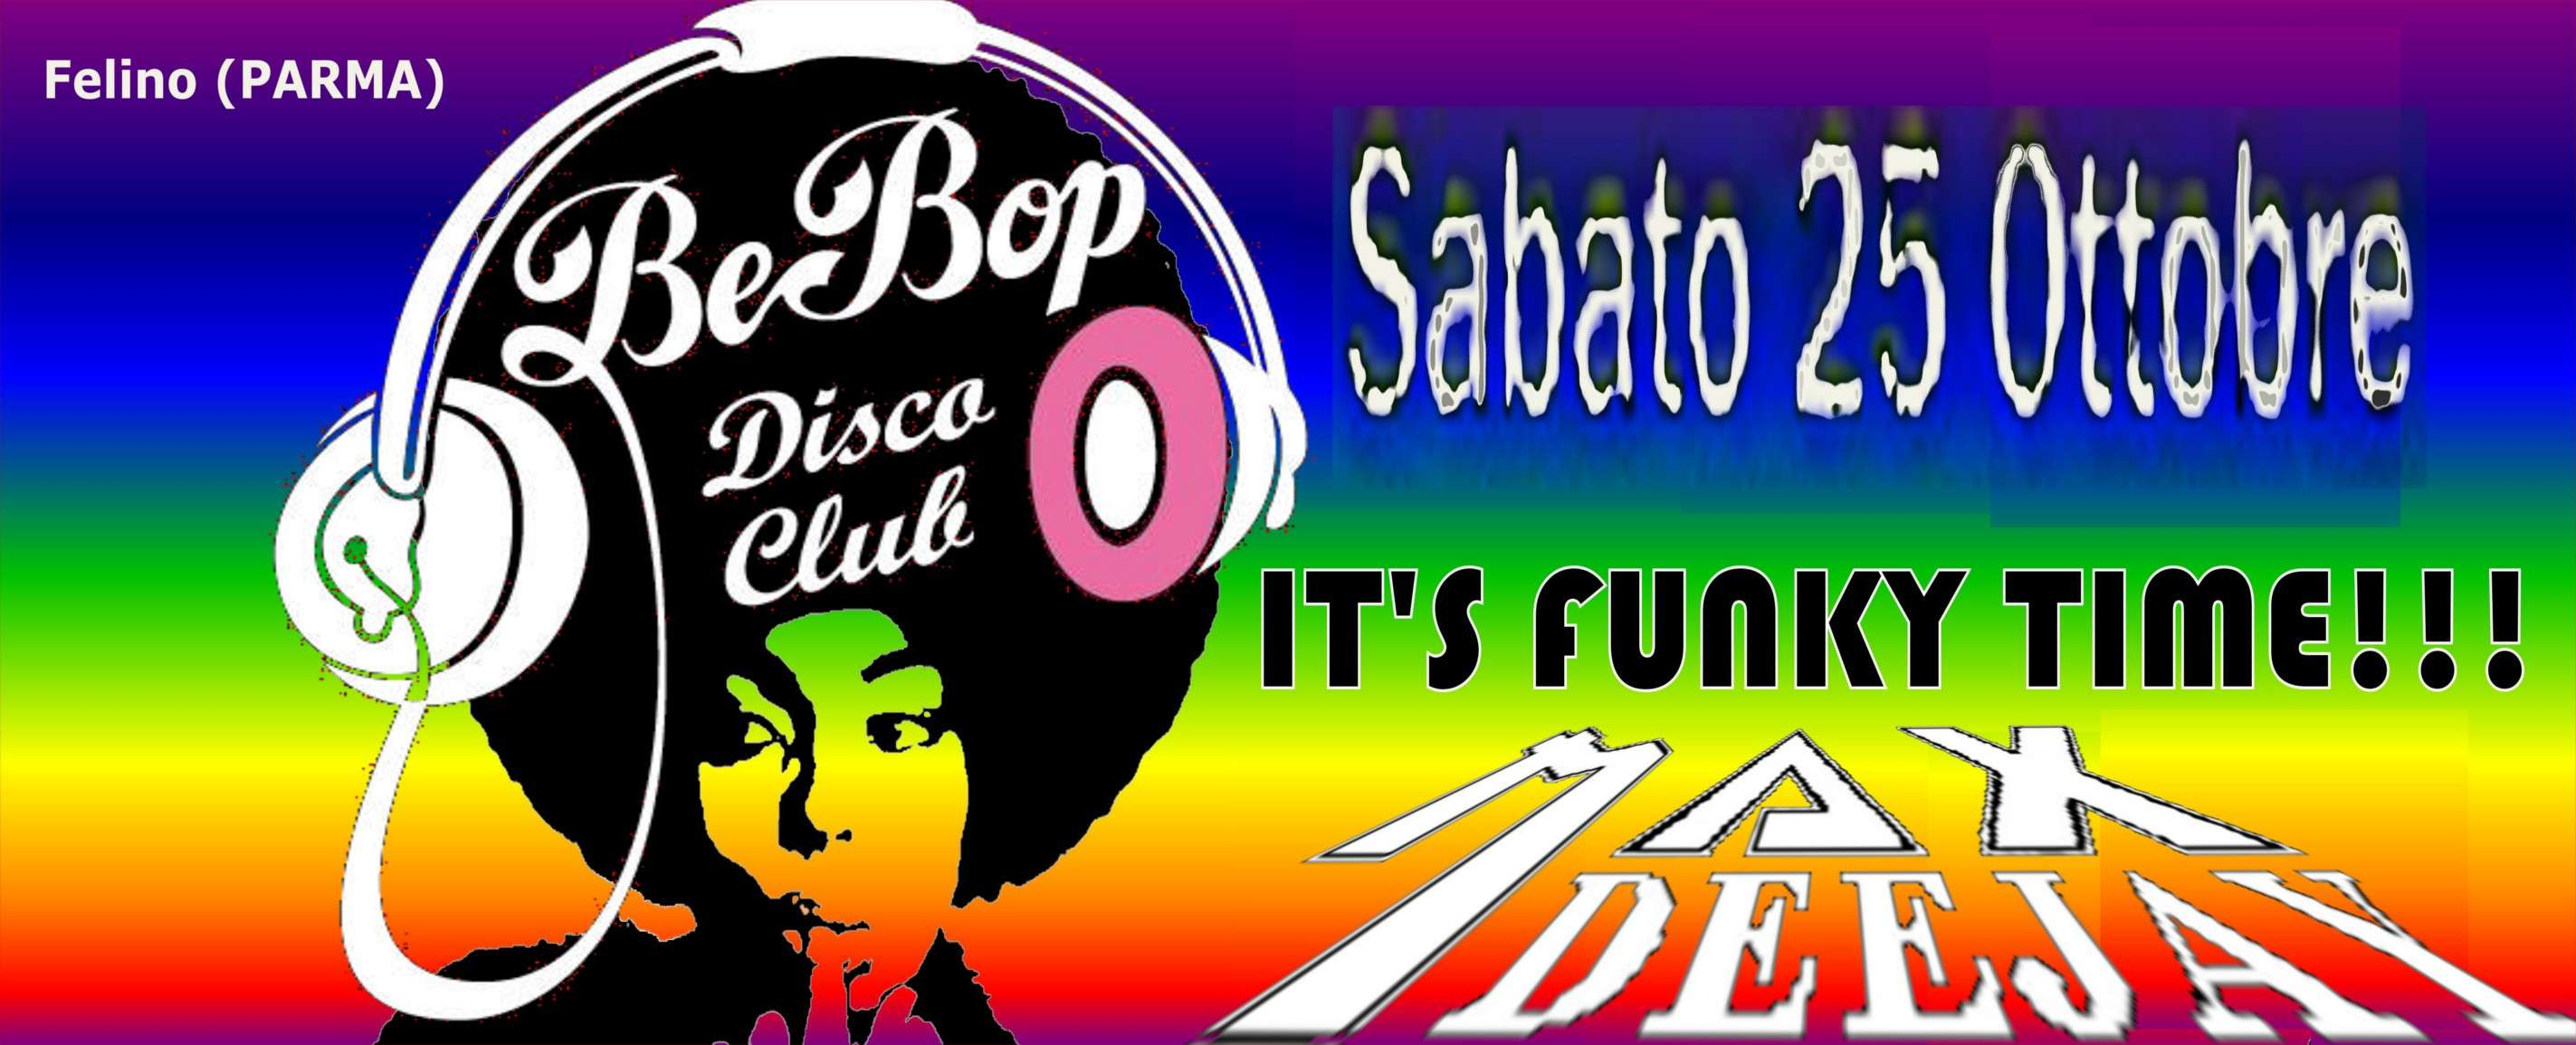 IT'S FUNKY TIME@BeBop-Felino (PR) by MAX TESTA DEEJAY Funky-10